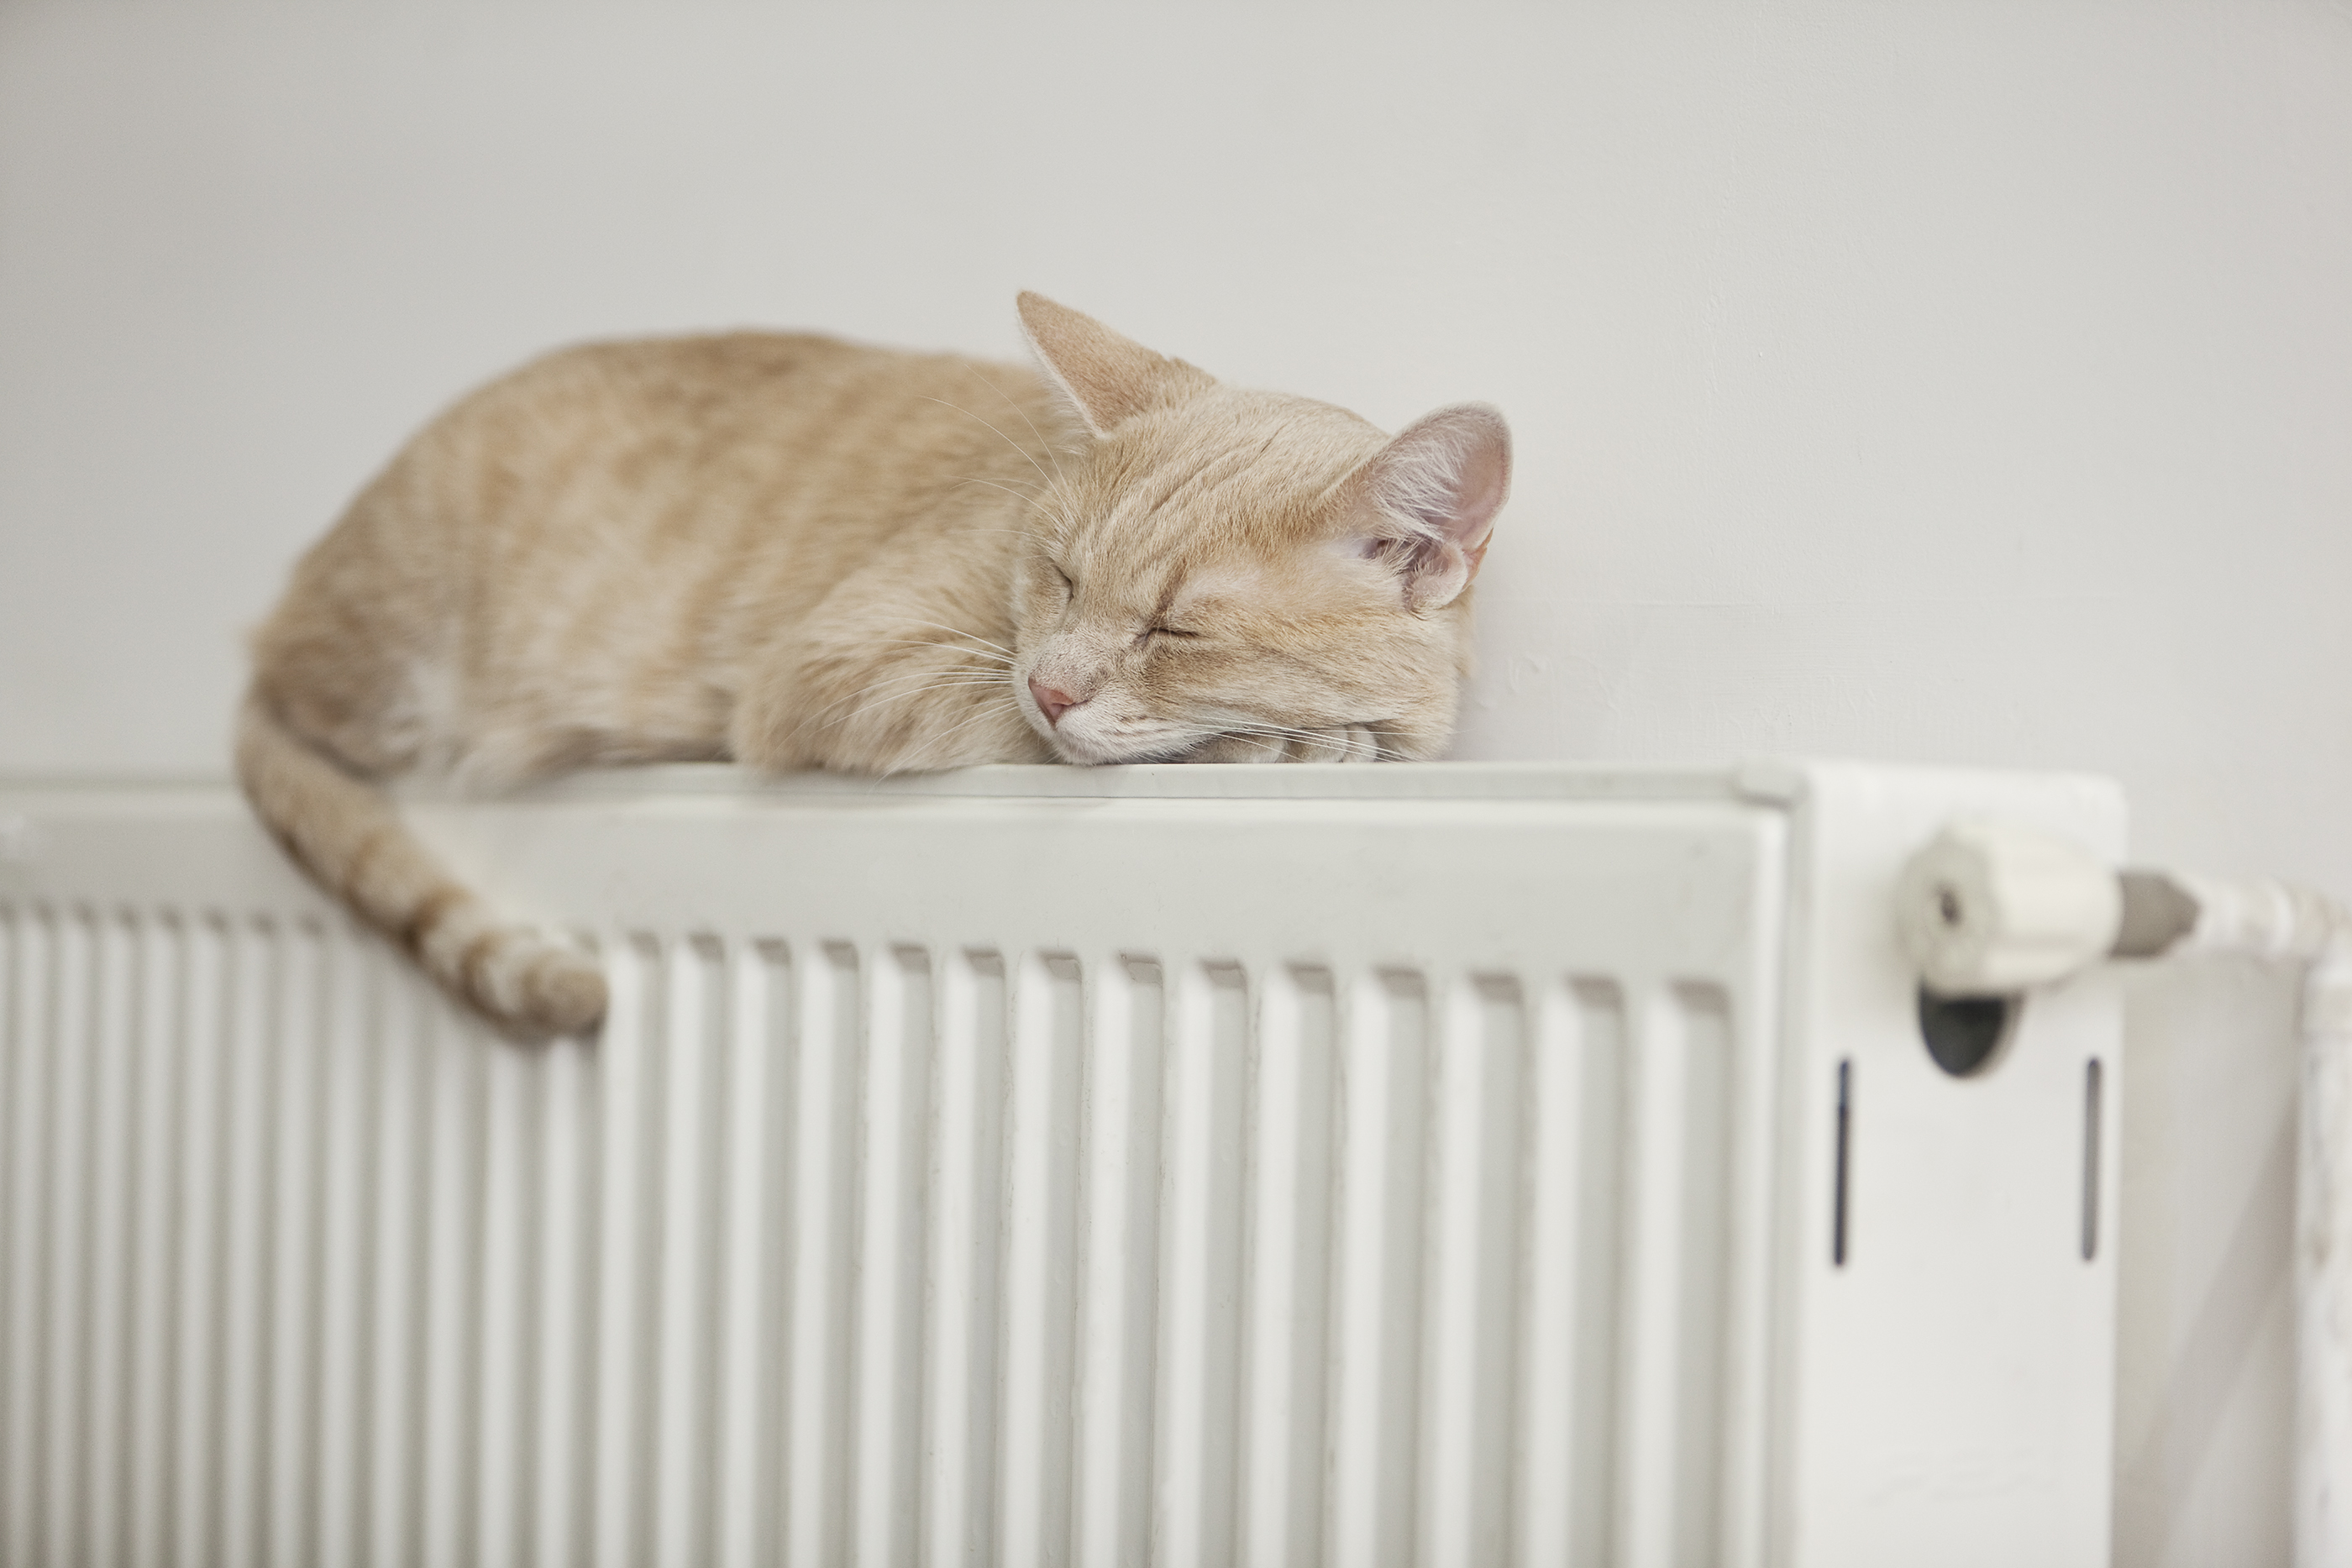 Kitten on radiator heating solutions